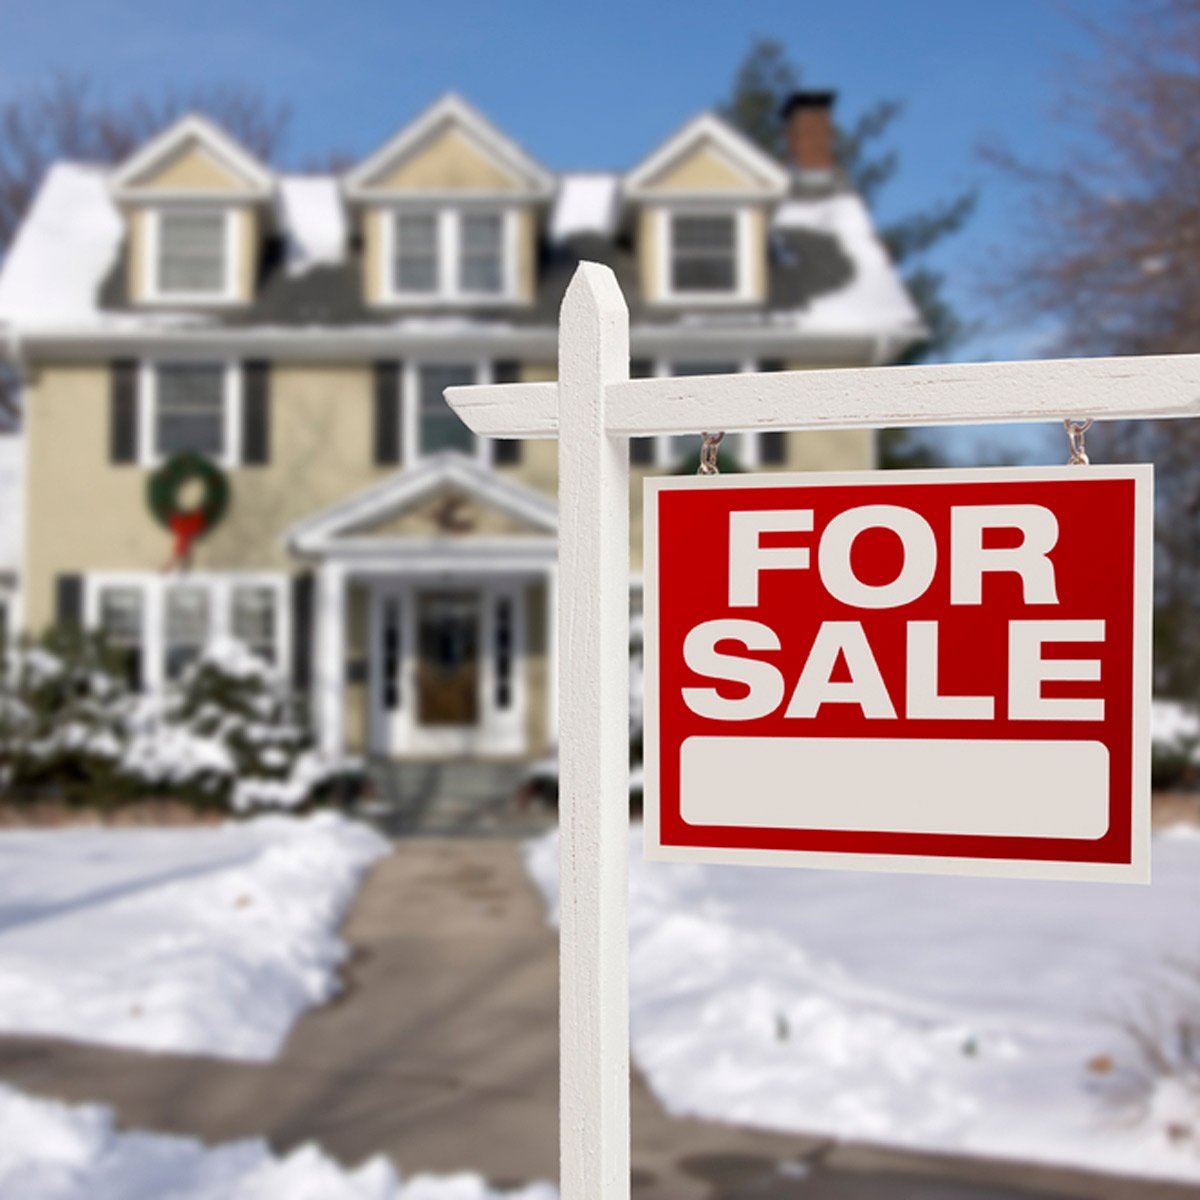 A QUICK WAY TO GET YOUR HOUSE READY TO SELL: